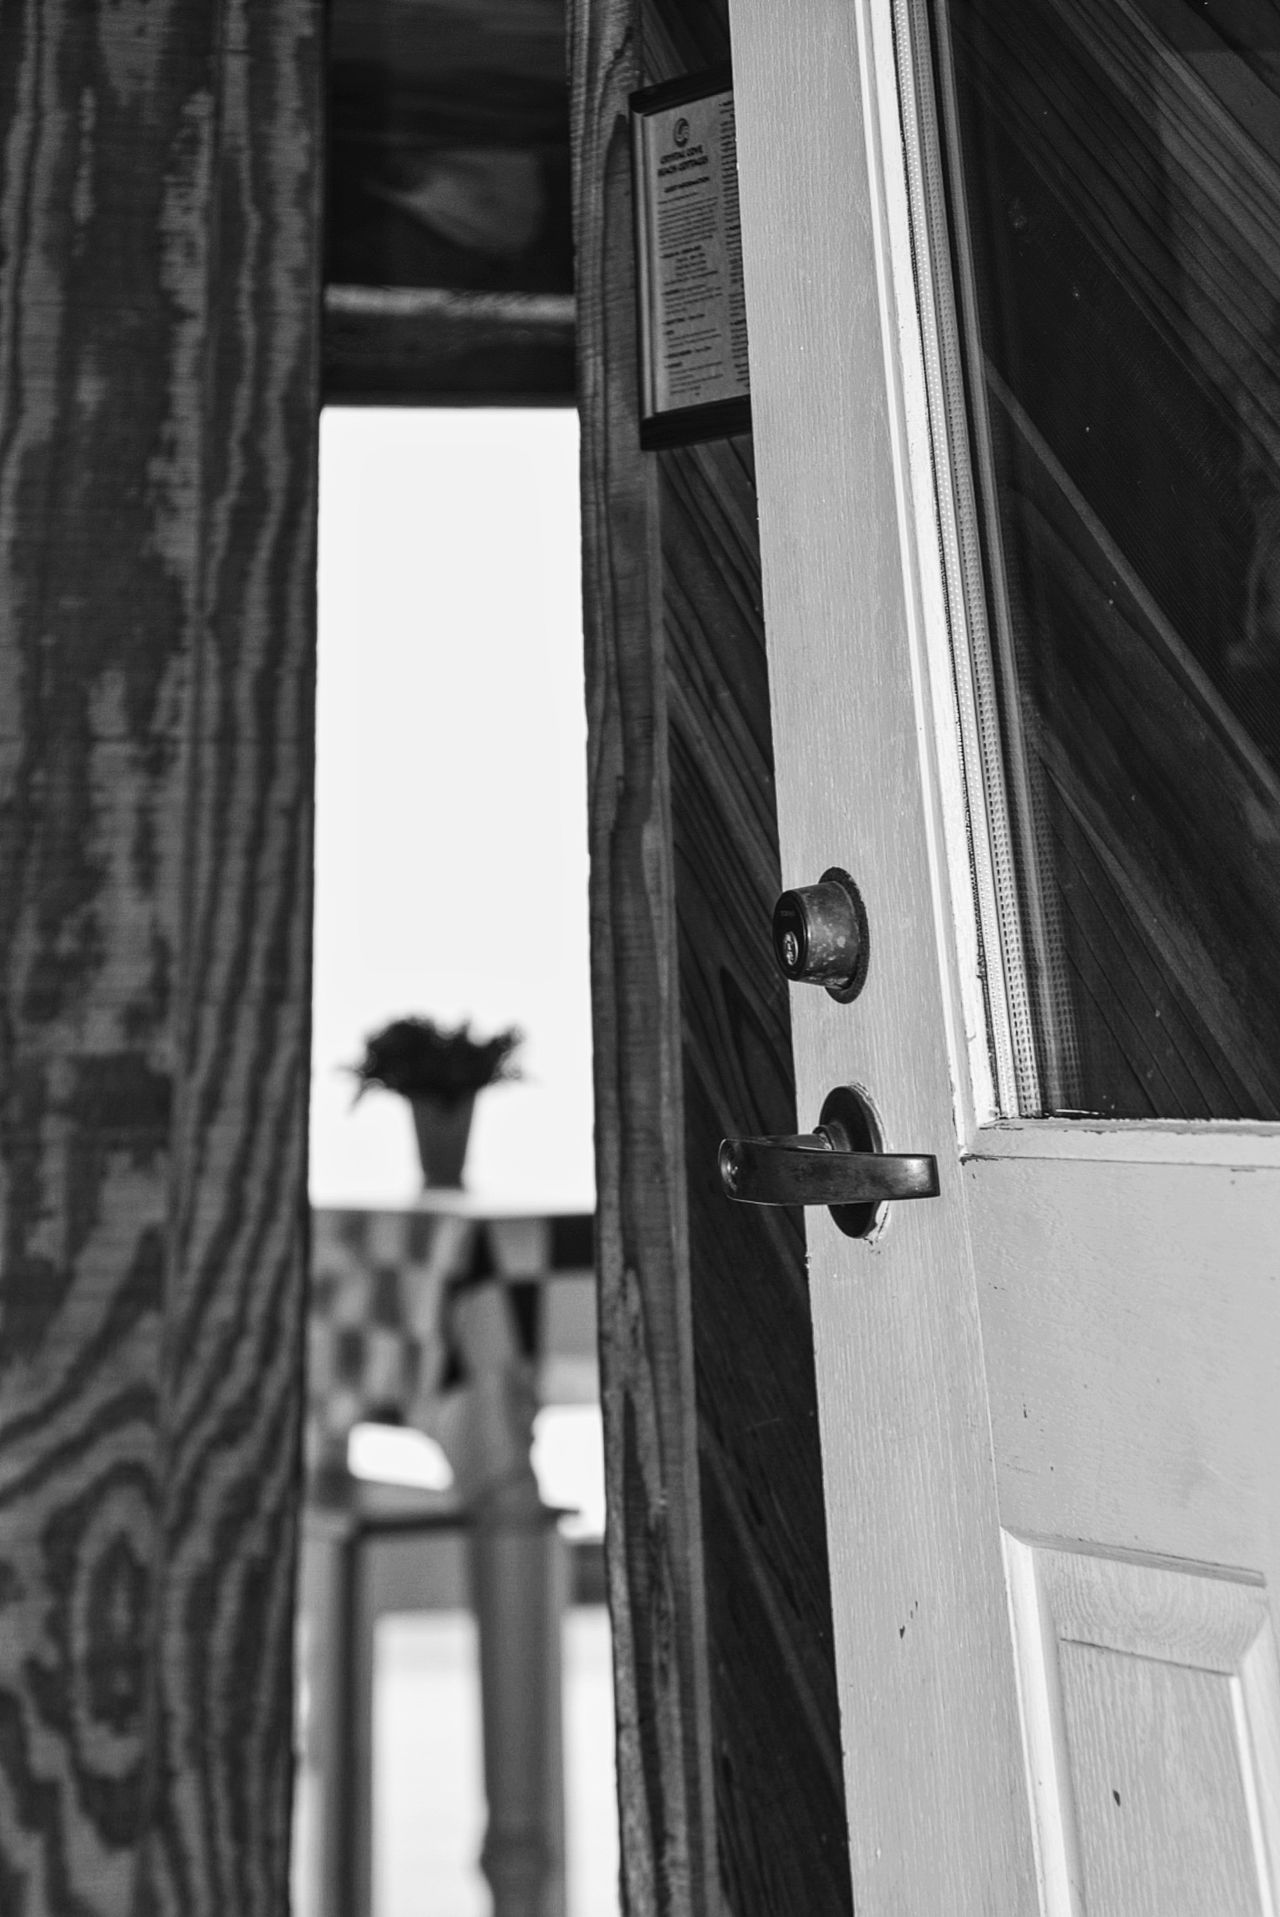 Come in Architectural Detail EyeEm Best Shots - Black + White Views From The Sidewalk Entrance Black And White Photography Doorway Doors Lover Beach Life Coastal Life California Coast Photo Around Me Photos For EyeEm Perfect Moment Entrances EyeEm Best Shots Tablecloth Summer Checkered Table Cloth Windowporn Fine Art Photography Natural Light Monochrome Photography